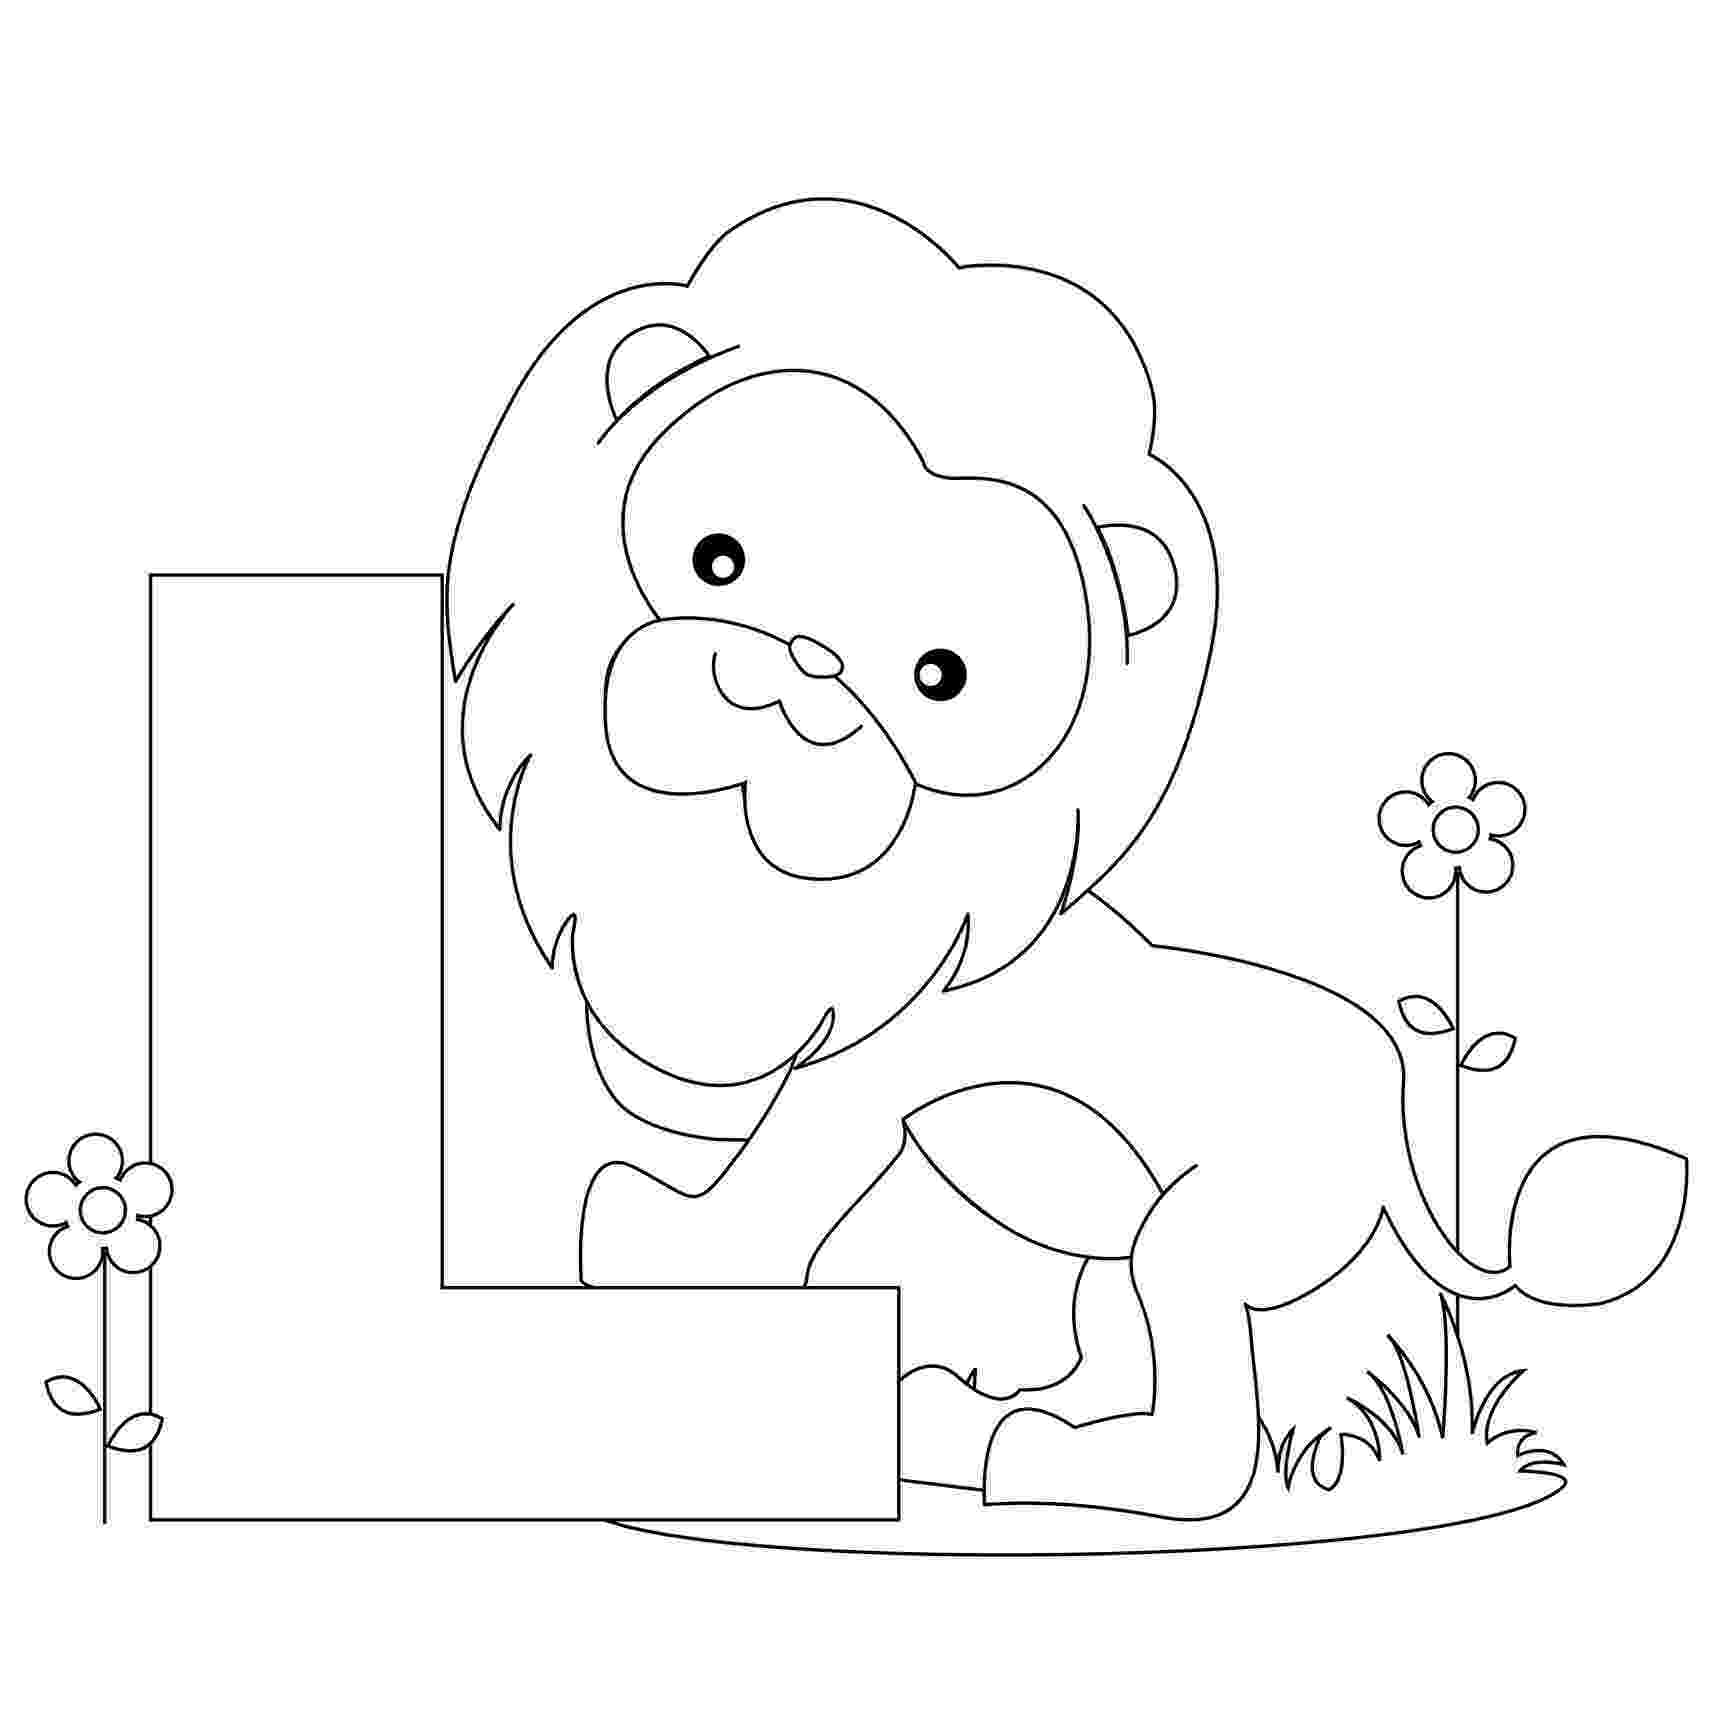 free alphabet coloring pages free printable alphabet coloring pages for kids best coloring free pages alphabet